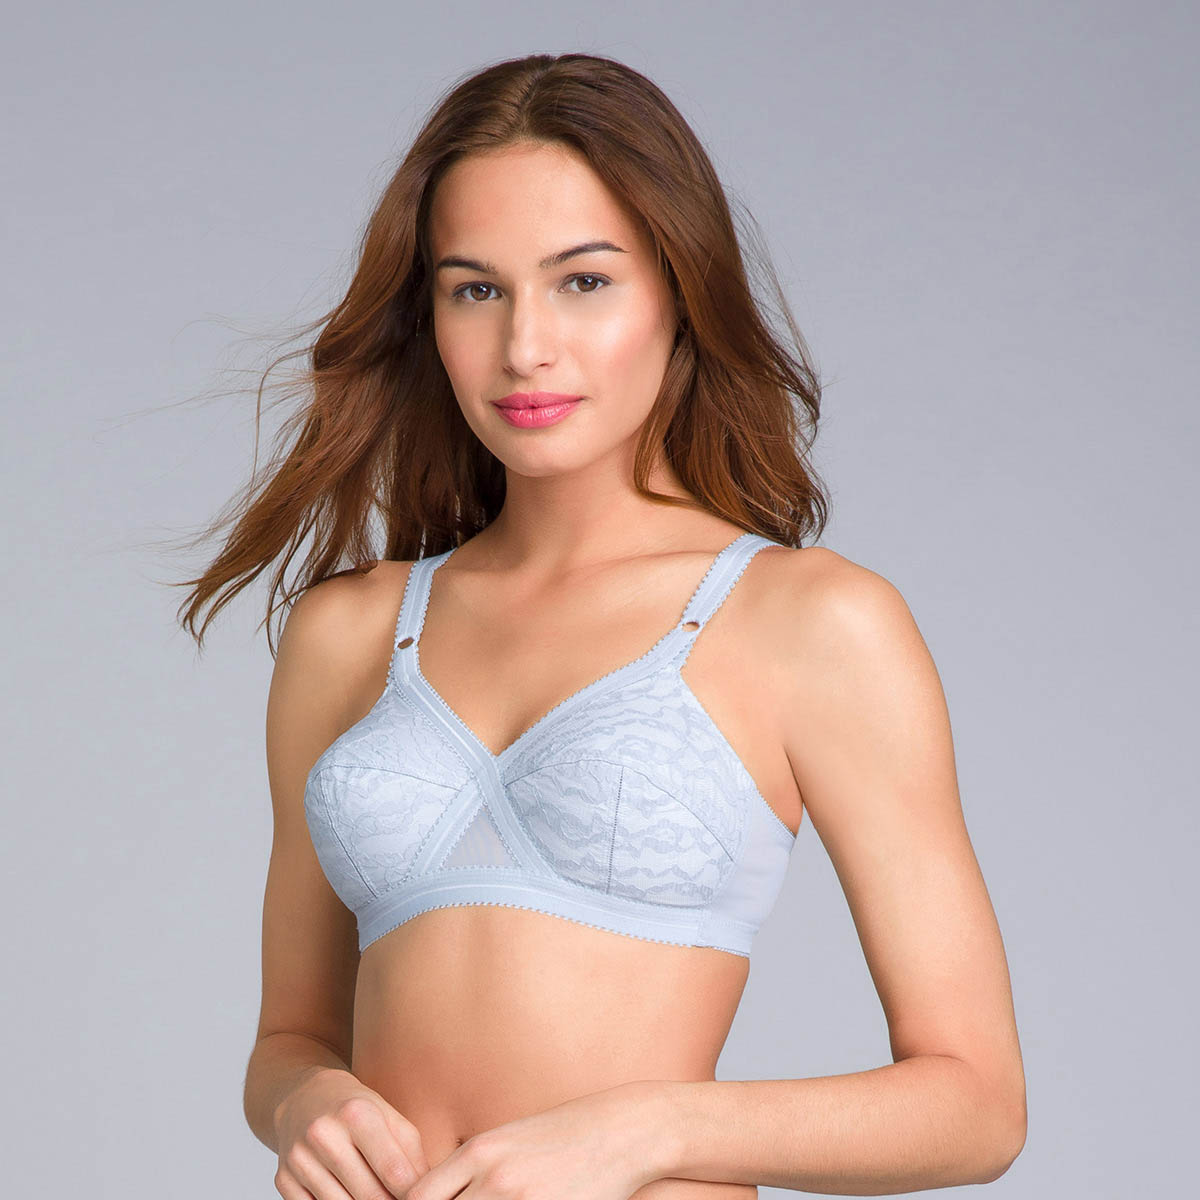 Non-Wired Full Cup Bra in Blue Fog Lace - Cross Your Heart 556 - PLAYTEX